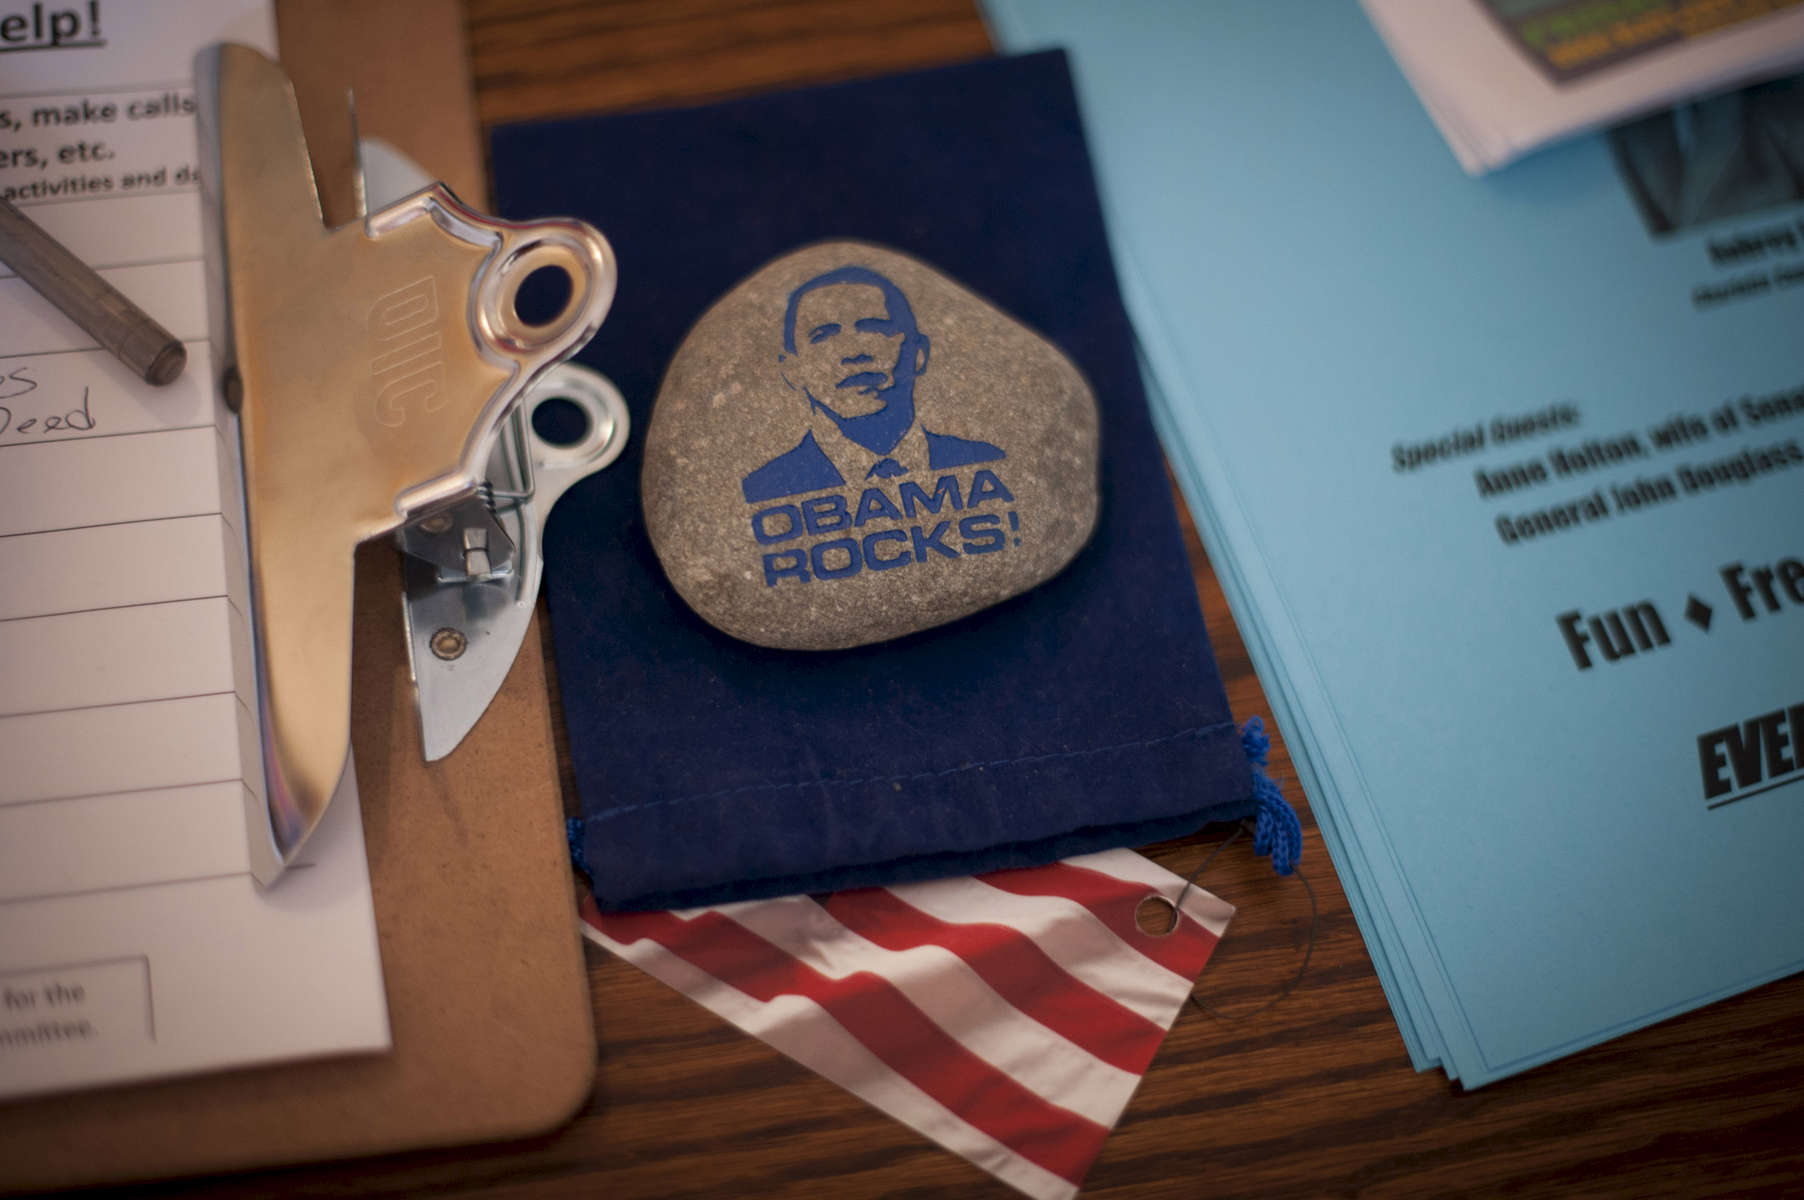 August 29, 2012- Charlottesville, VA: A rock with the emblem {quote}Obama Rocks!{quote} lies on a desk at an Obama campaign field office in Charlottesville, VA.  (Scout Tufankjian for Obama for America/Polaris)